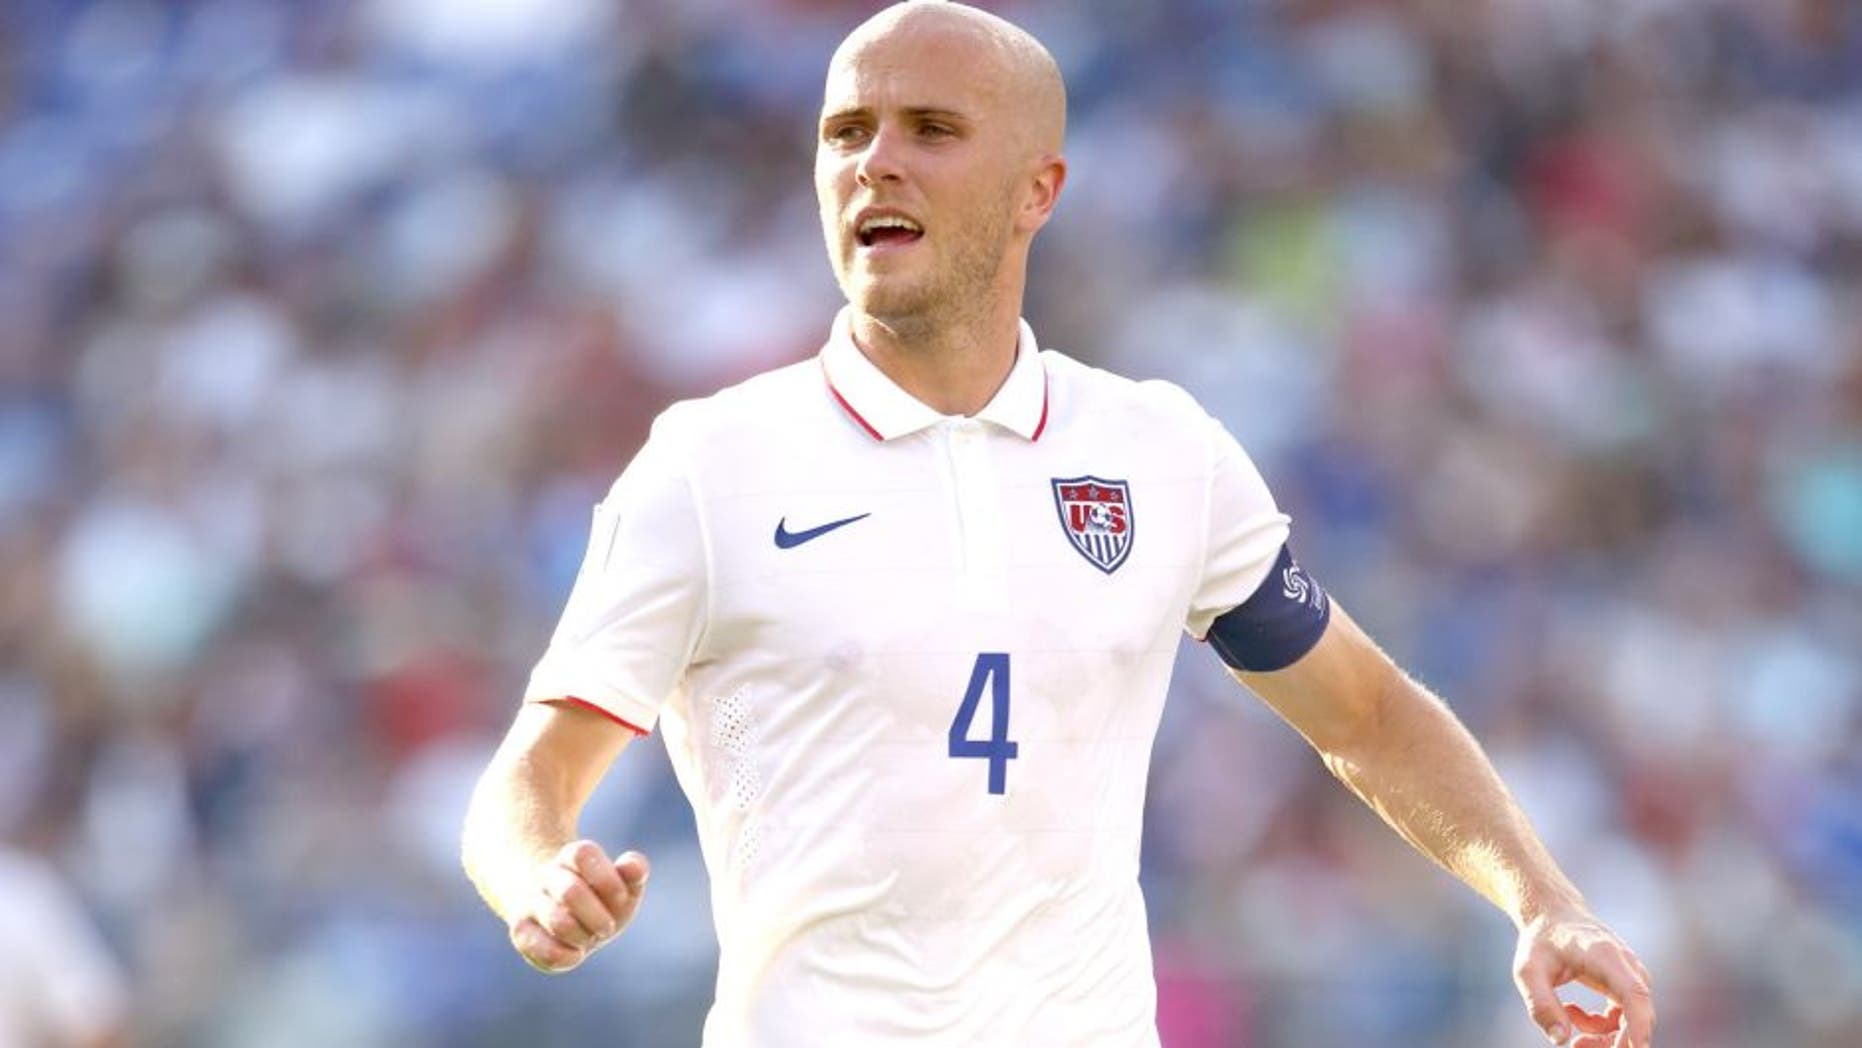 BALTIMORE, MD - JULY 18: Michael Bradley of United States of America during the Gold Cup Quarter Final between USA and Cuba at M&T Bank Stadium on July 18, 2015 in Baltimore, Maryland. (Photo by Matthew Ashton - AMA/Getty Images)